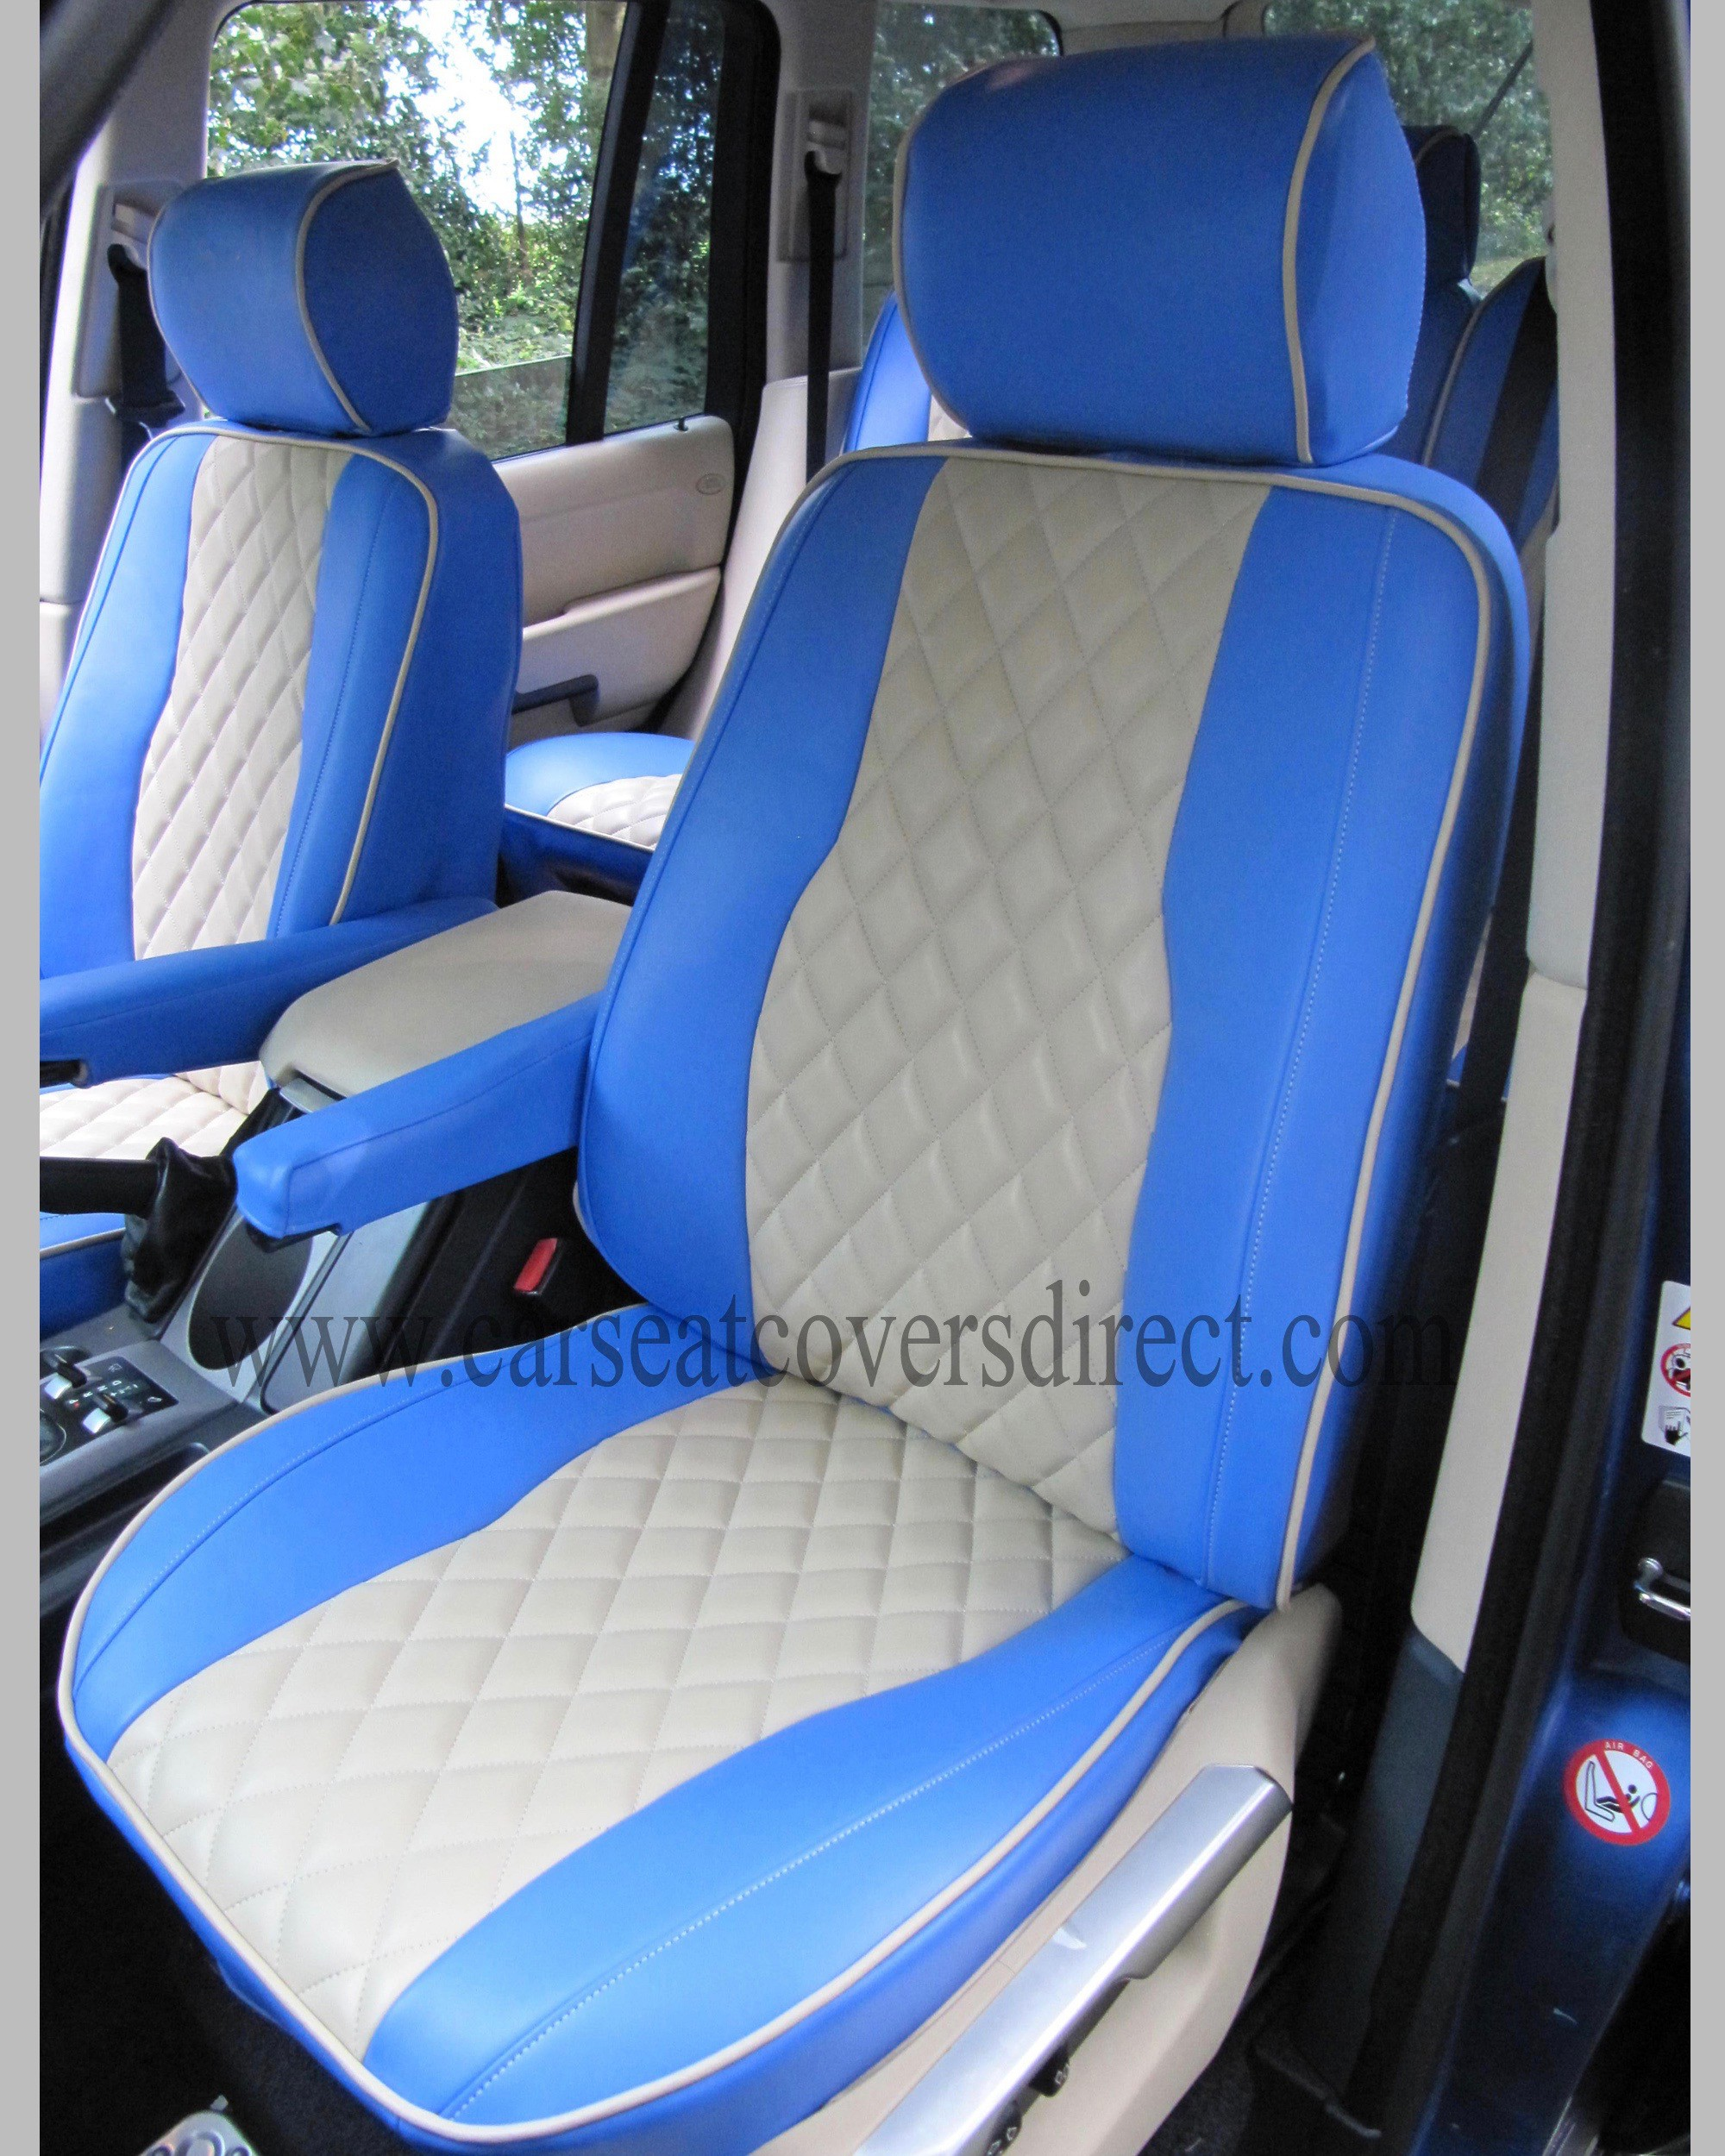 Range Rover Vogue Blue & Cream Seat Covers Car Seat Covers